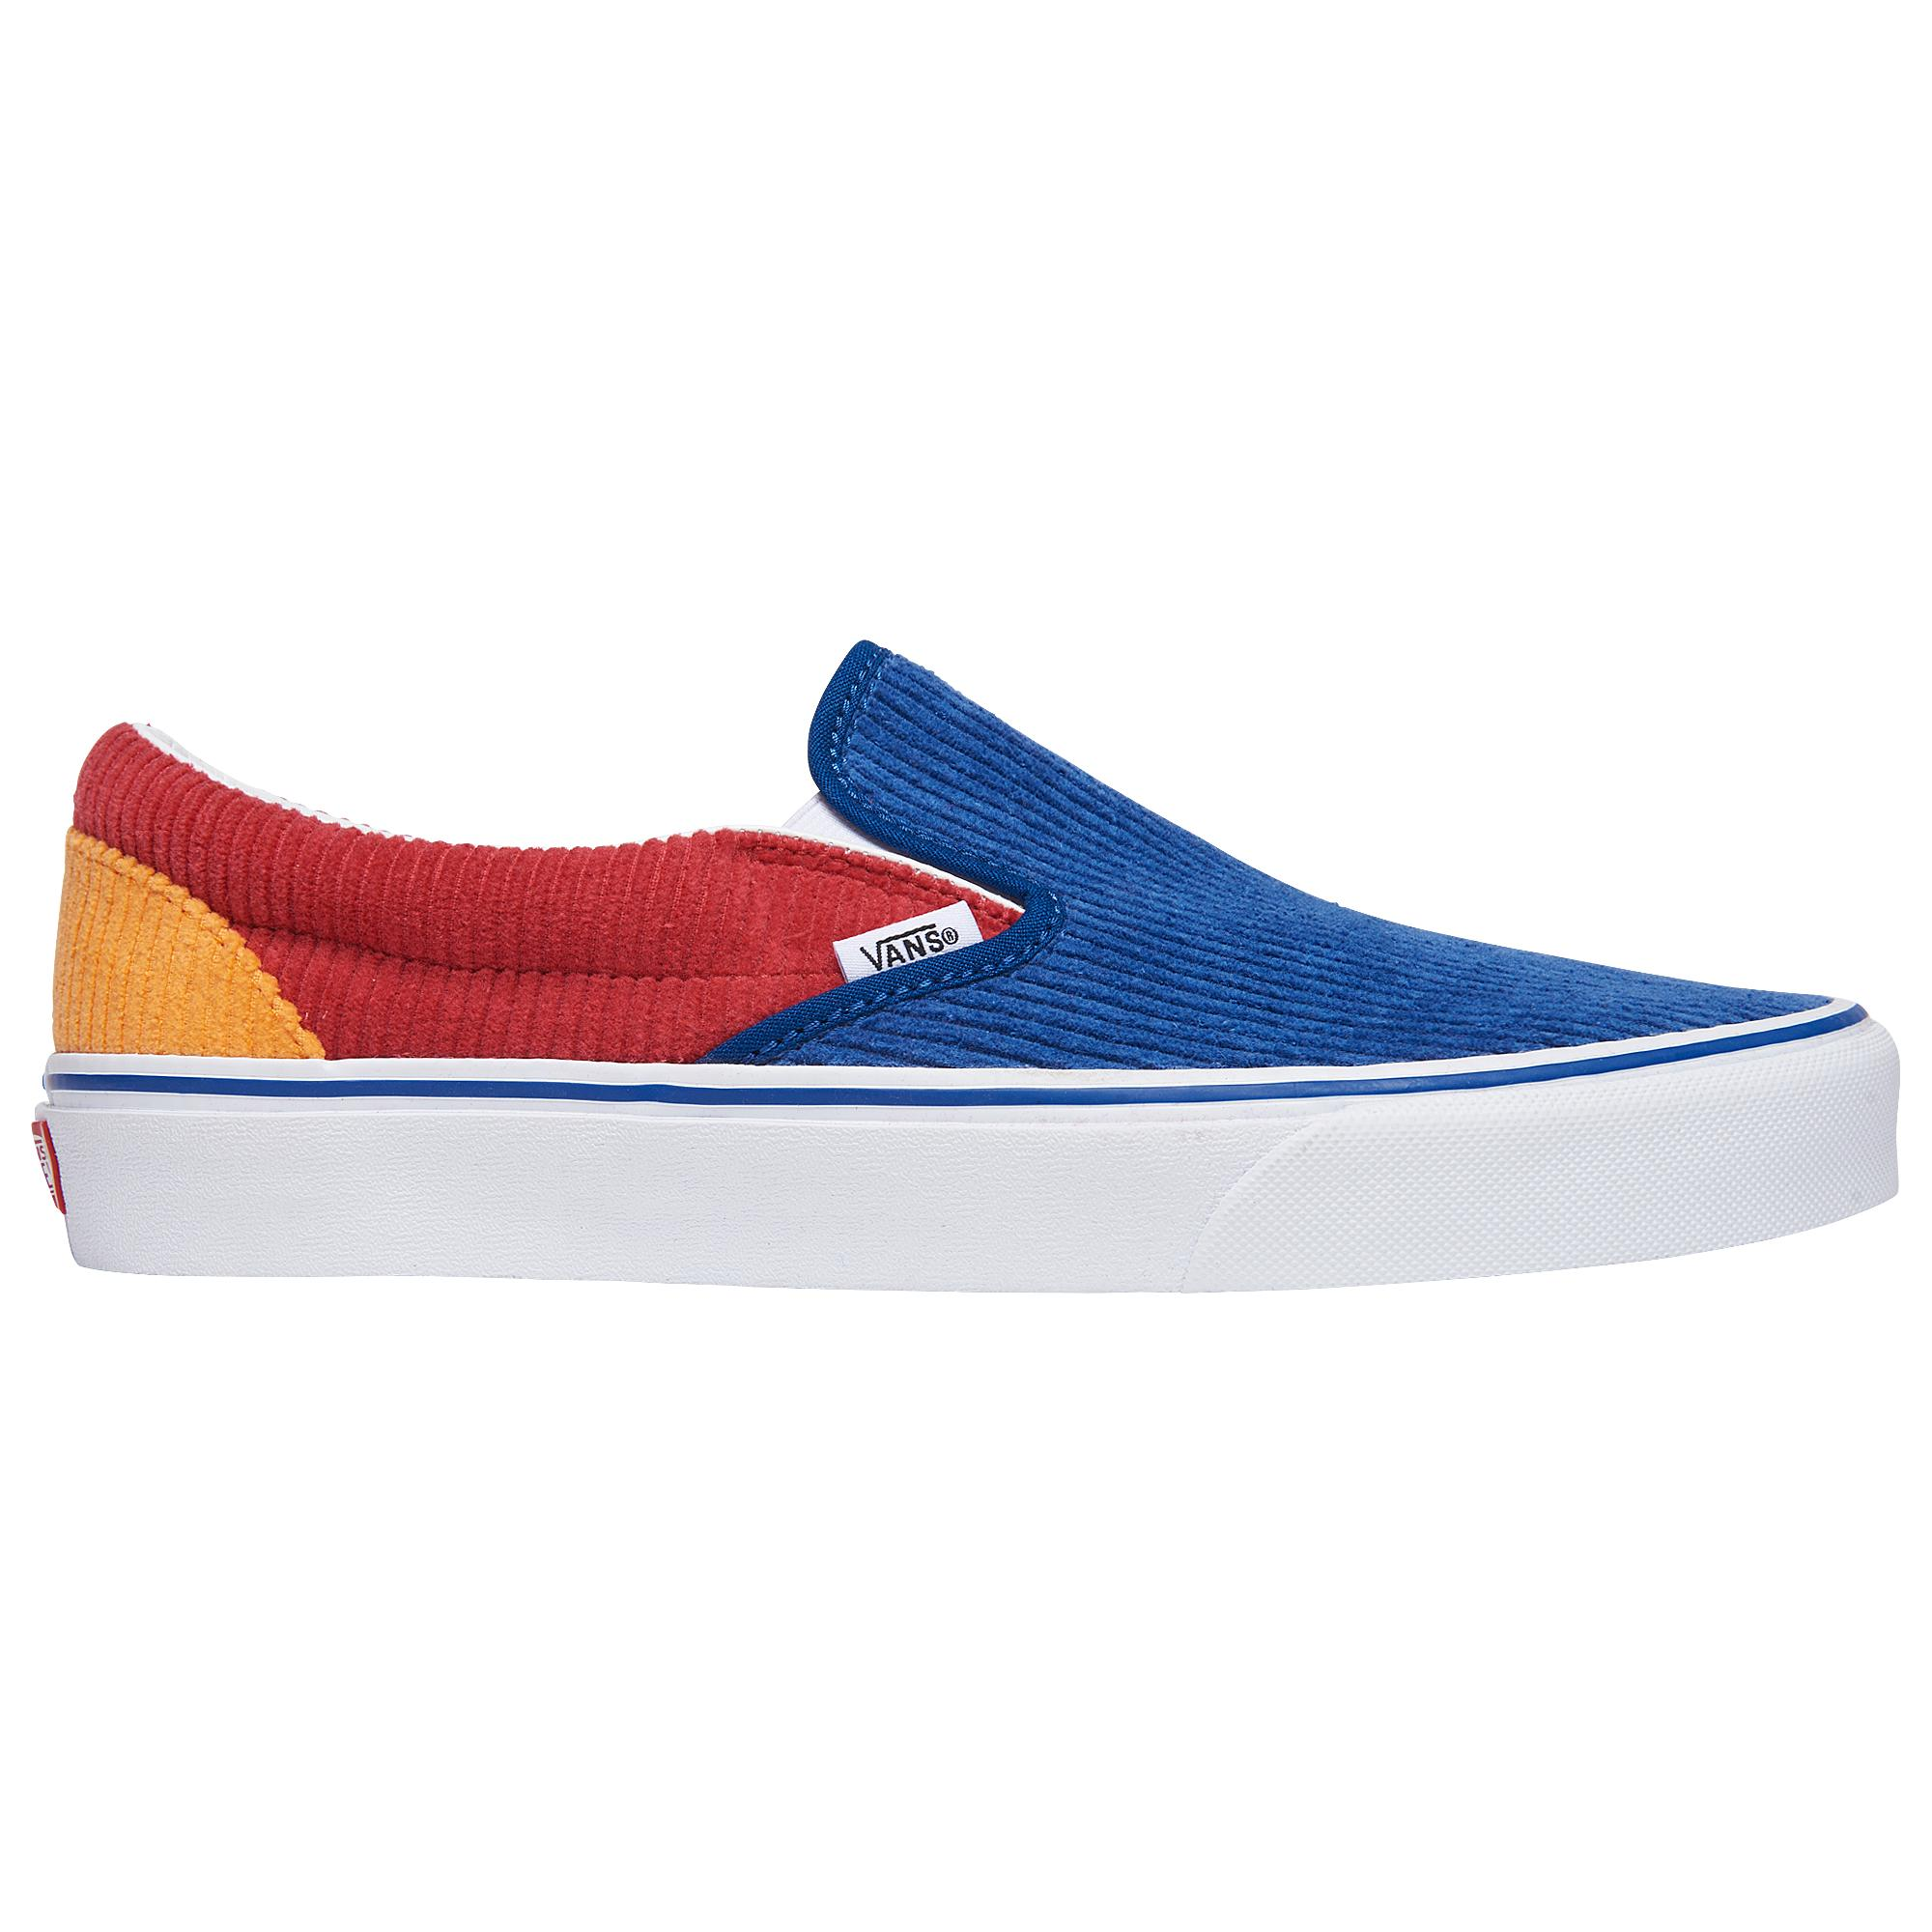 Vans Canvas Classic Slip On - Shoes in